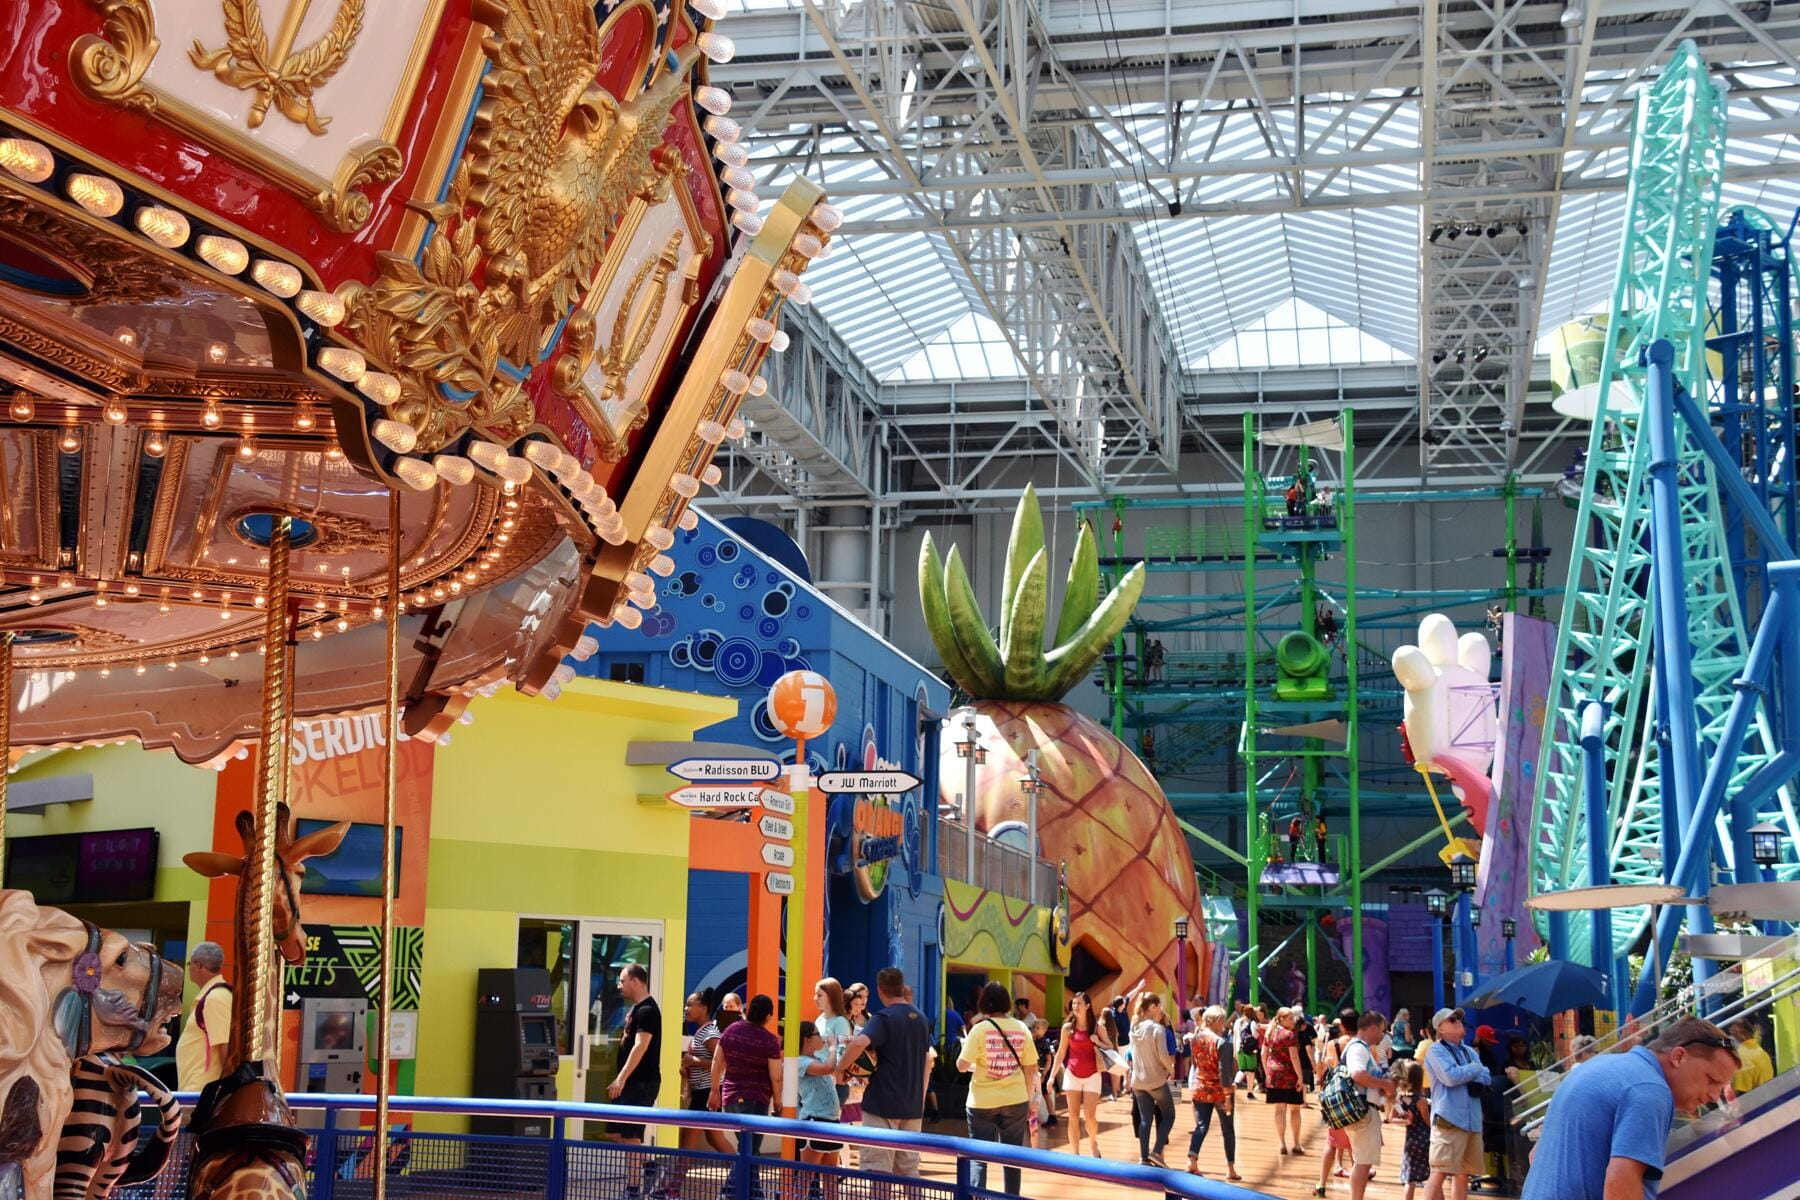 America's Biggest Indoor Theme Park to Open Inside This Wildly Over-The-Top Mall